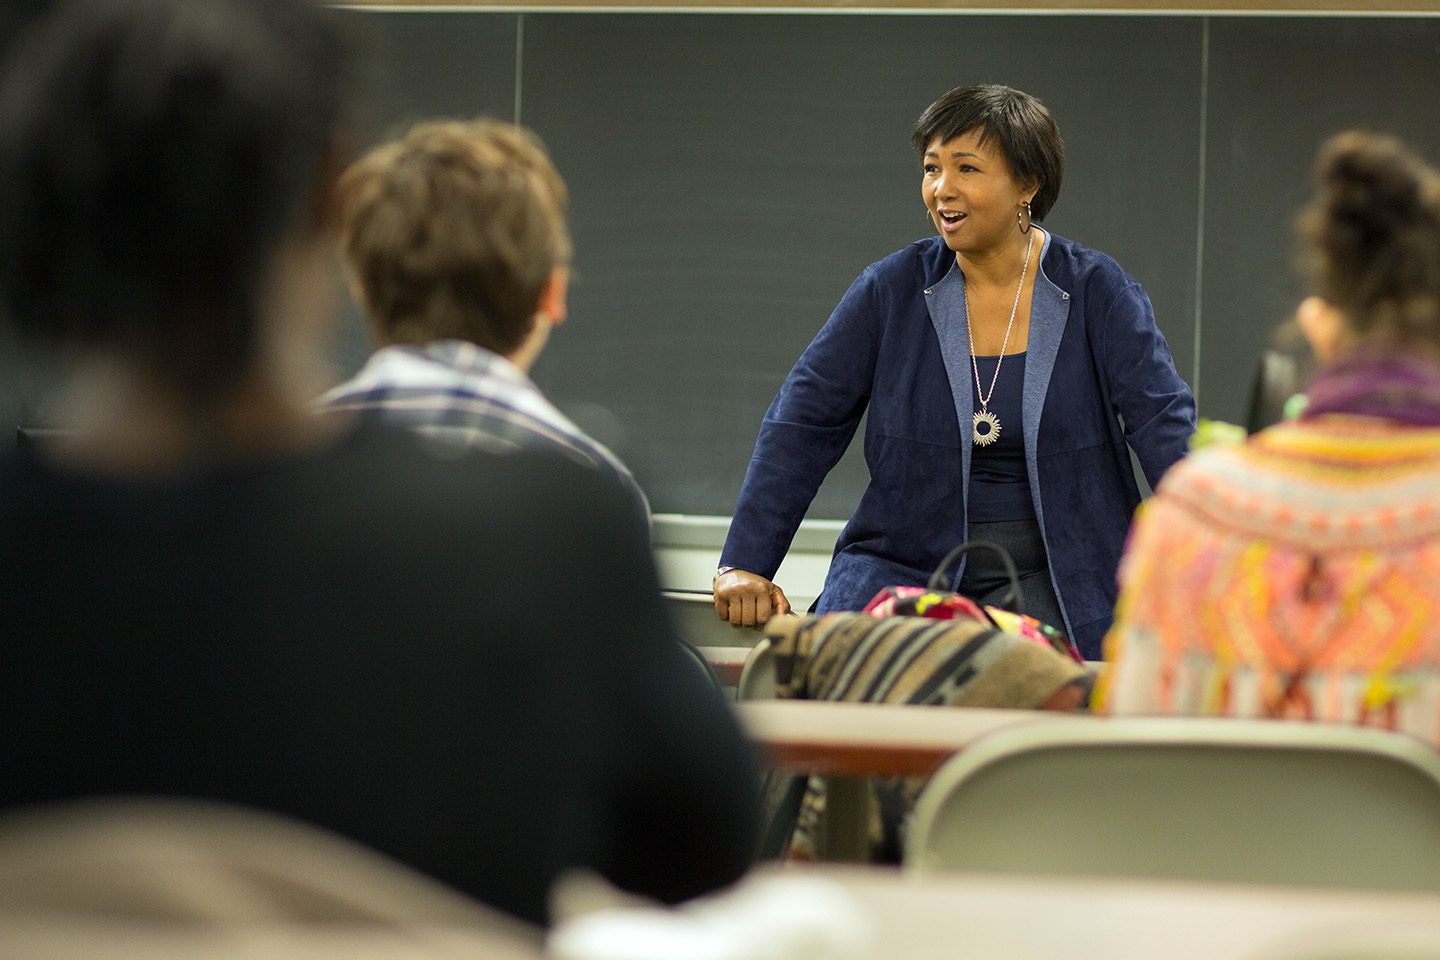 Astronaut Mae Jemison discusses her career with students.